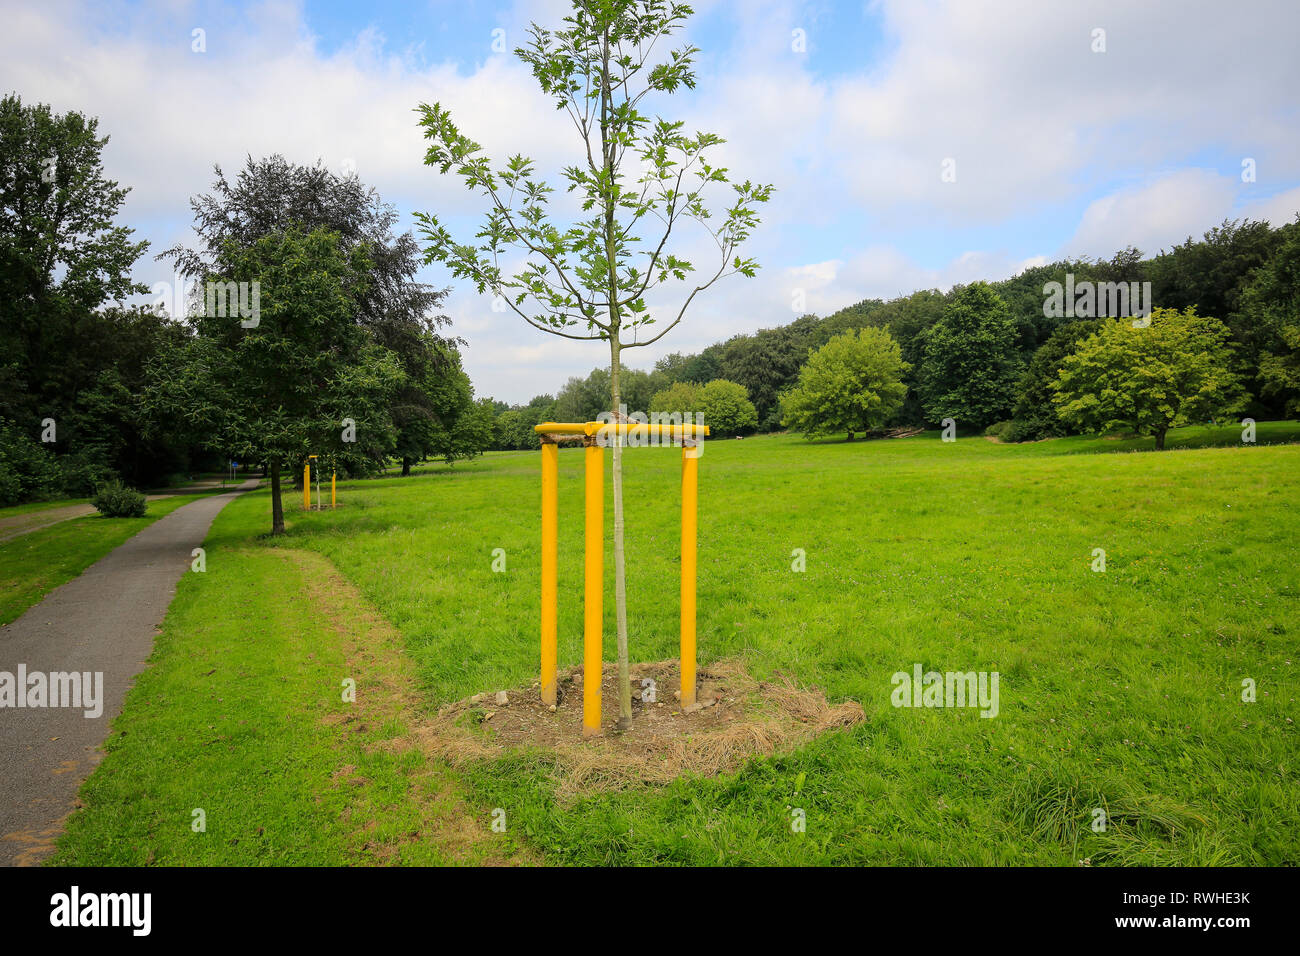 Essen, North Rhine-Westphalia, Ruhr area, Germany - The Hallopark between Stoppenberg and Schonnebeck is one of the oldest green areas in Essen, here  - Stock Image